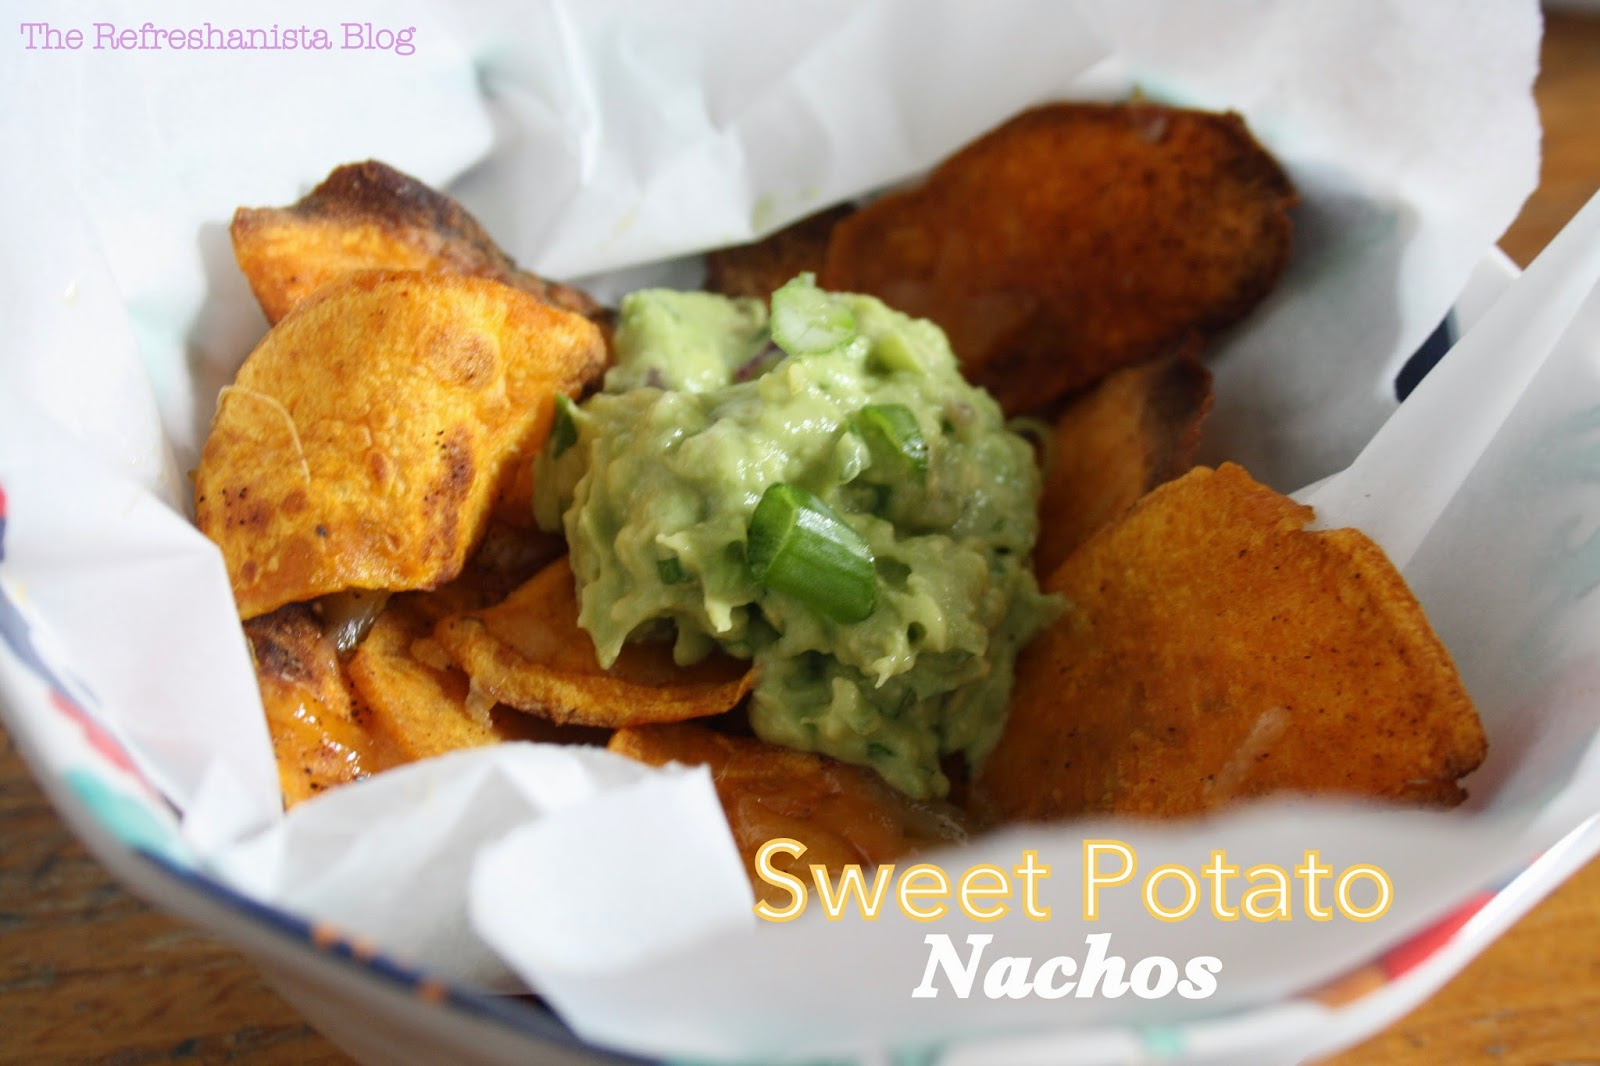 Sweet Potato Nachos | The Refreshanista Blog